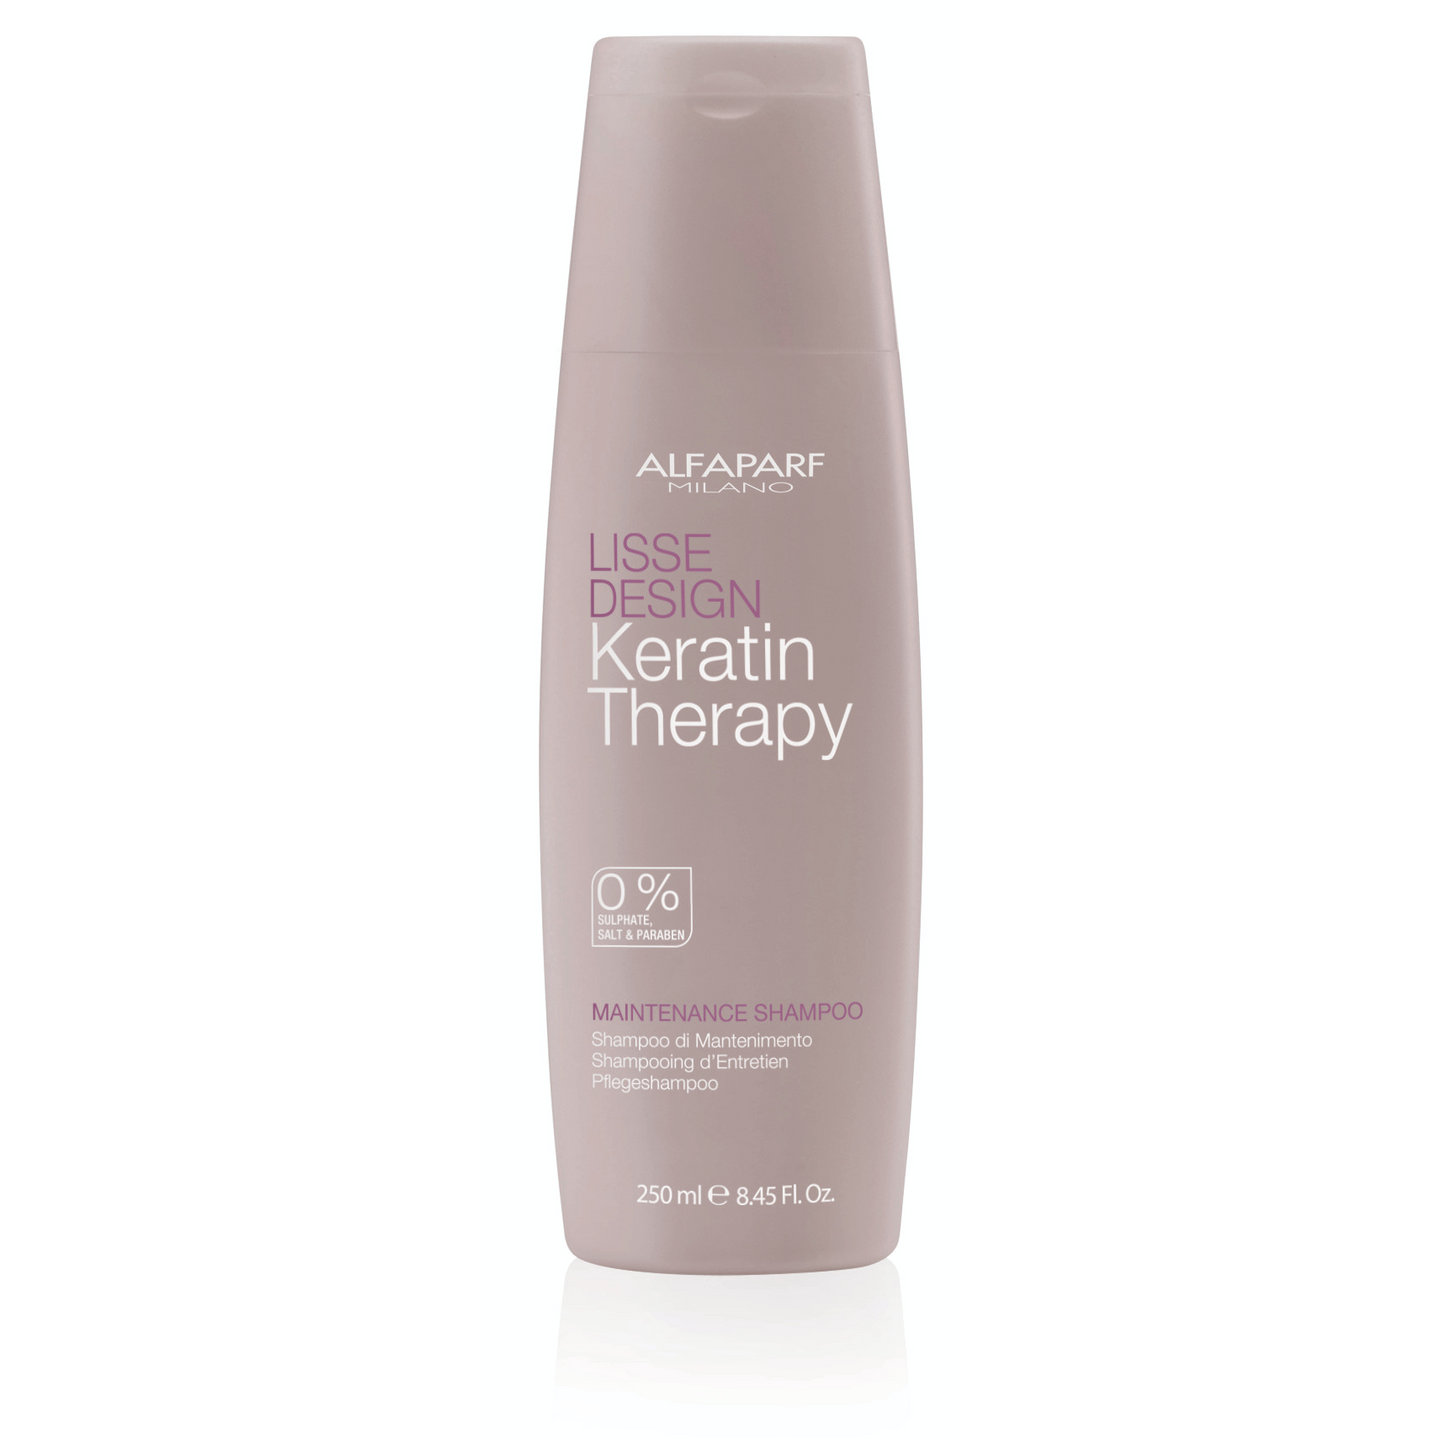 Keratin Therapy Lisse Design: Maintenance Shampoo